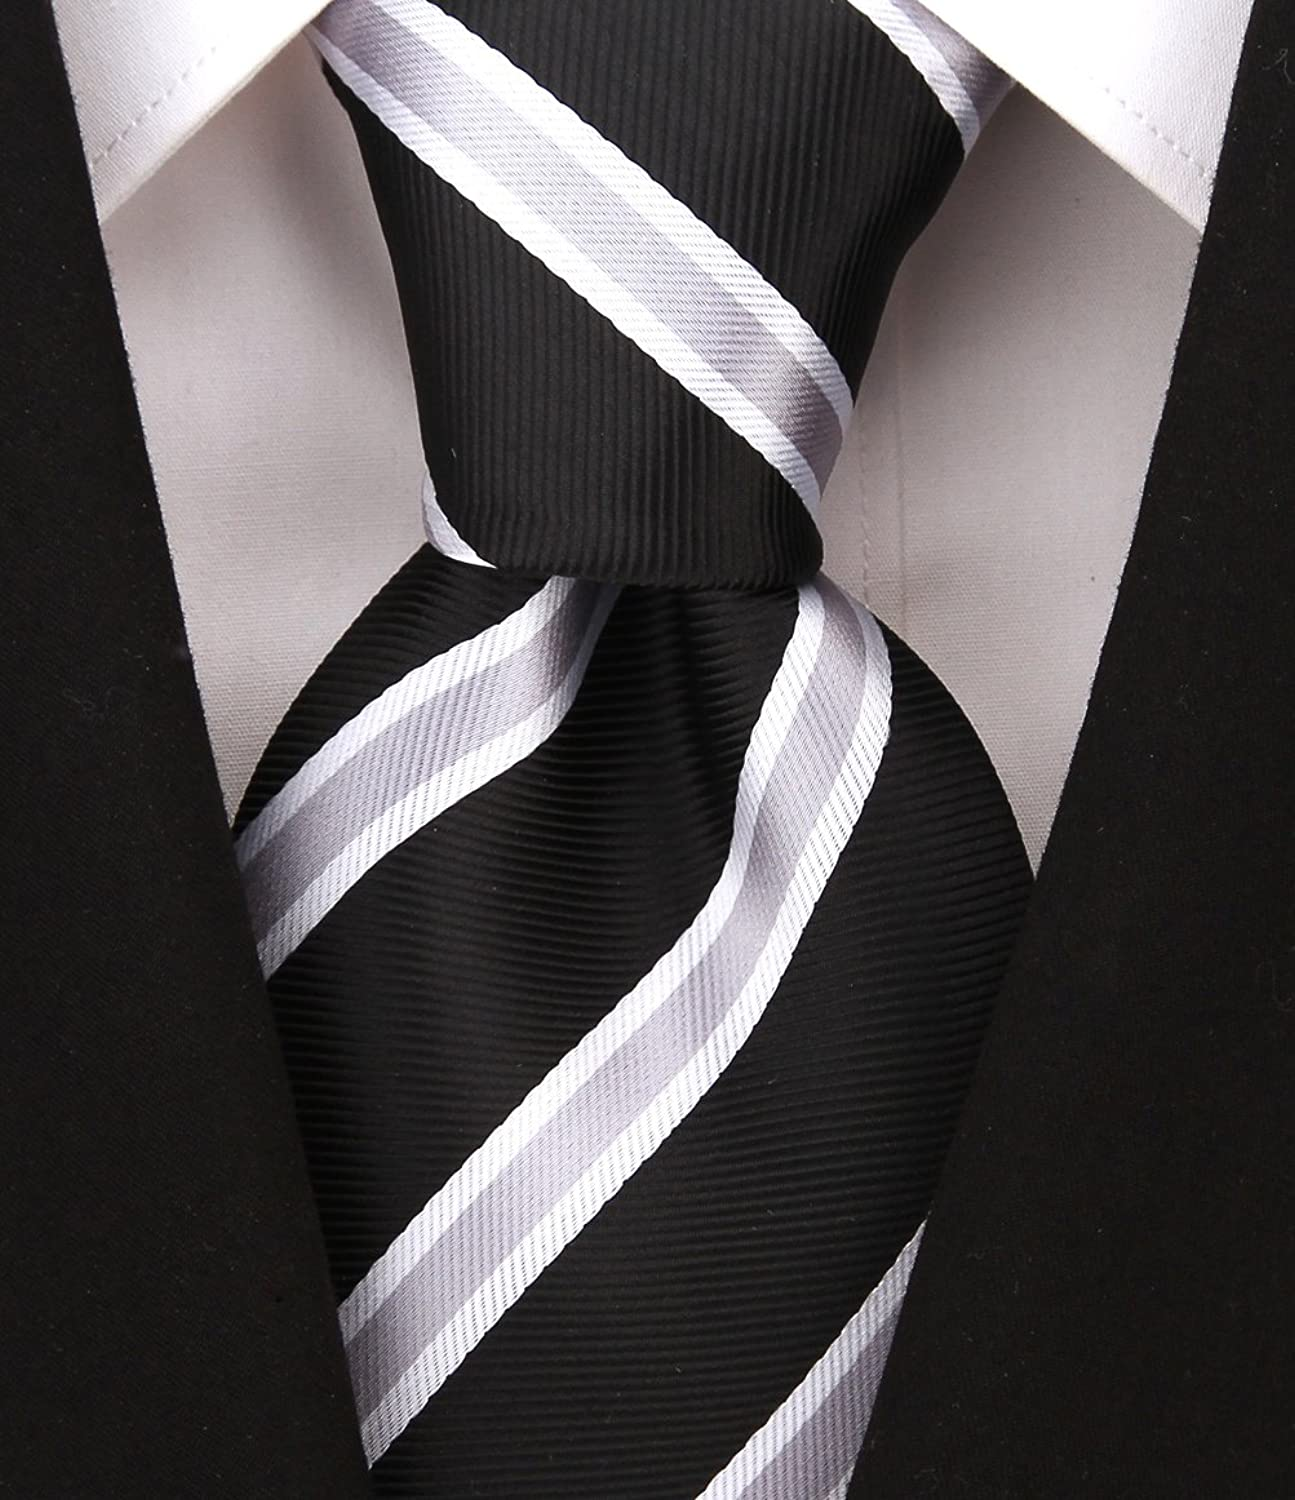 Victorian Men's Tuxedo, Tailcoats, Formalwear Guide Scott Allan Mens Striped Necktie $11.99 AT vintagedancer.com